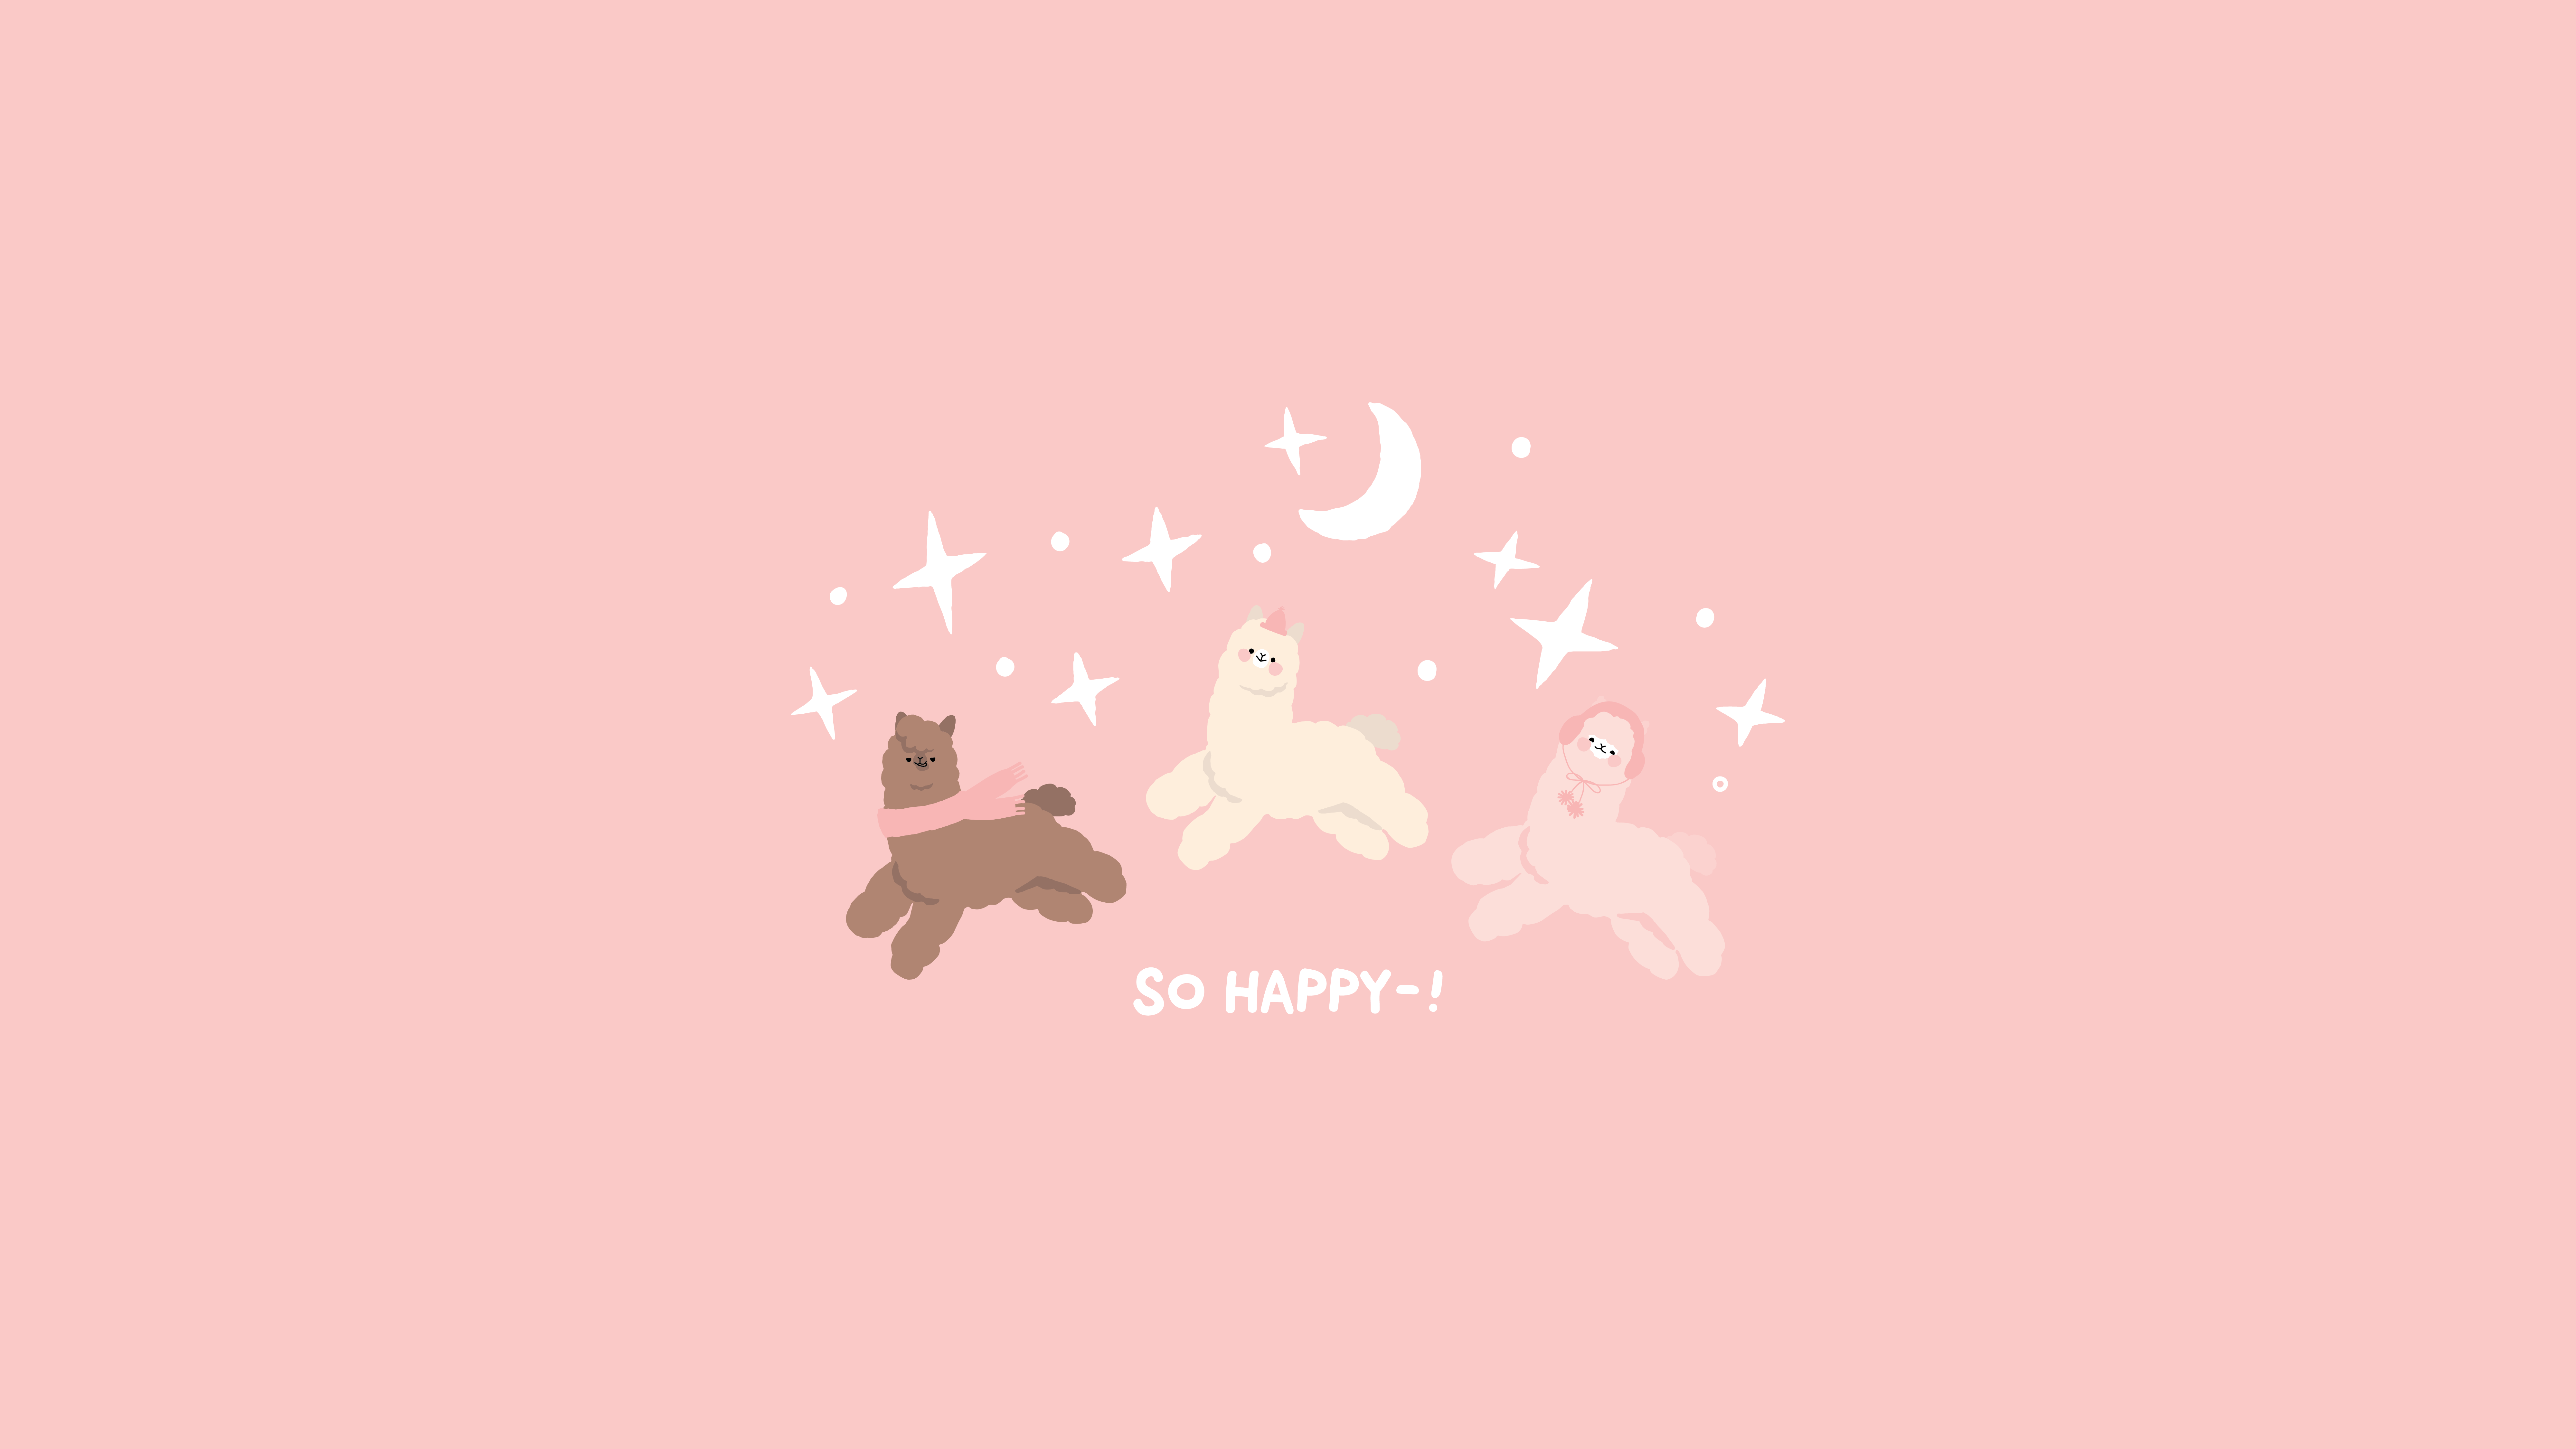 Pin By Polina On Eee Cute Laptop Wallpaper Cute Desktop Wallpaper Kawaii Wallpaper